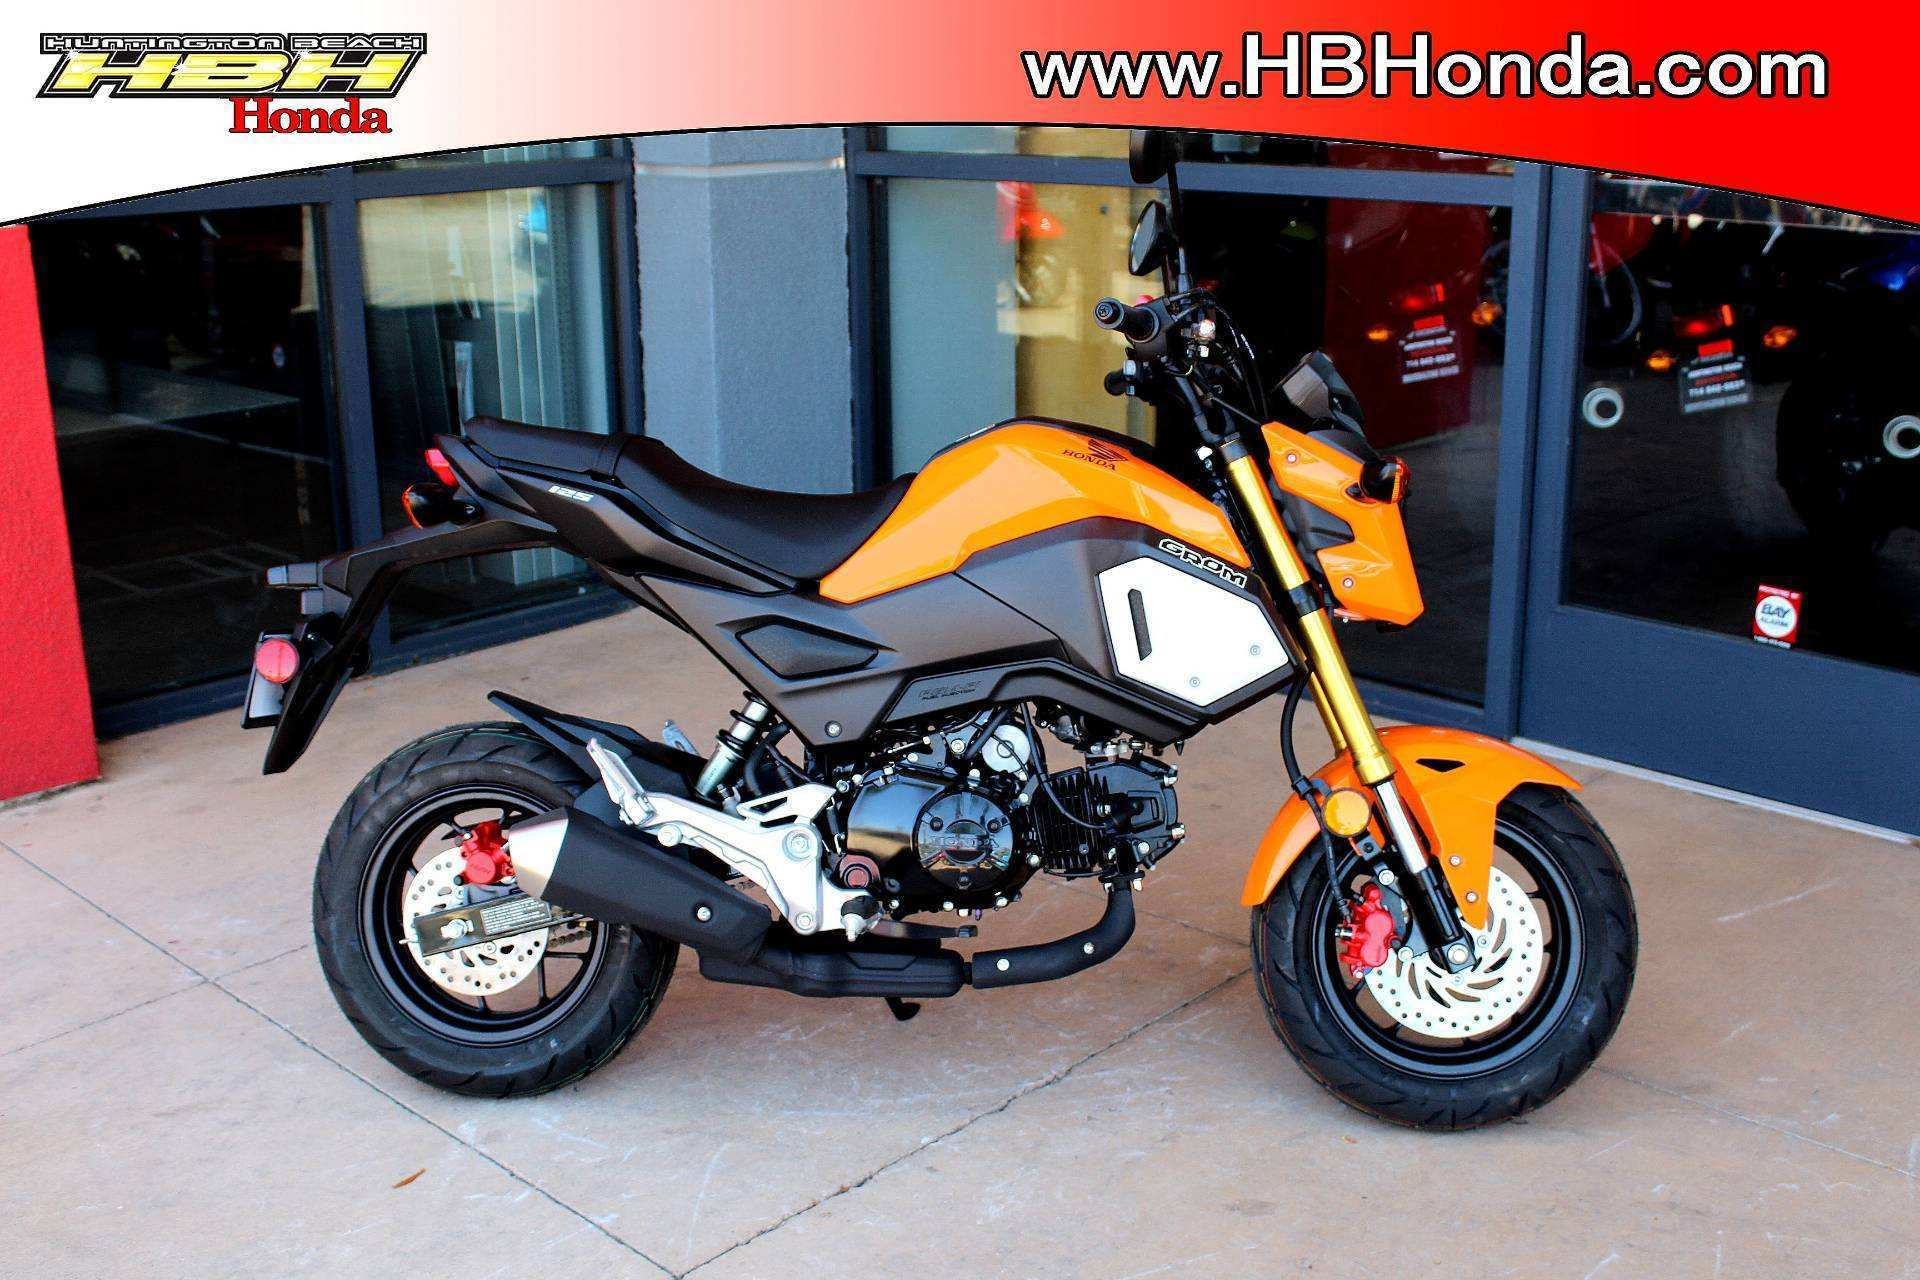 38 New 2019 Honda Grom Specs Model with 2019 Honda Grom Specs